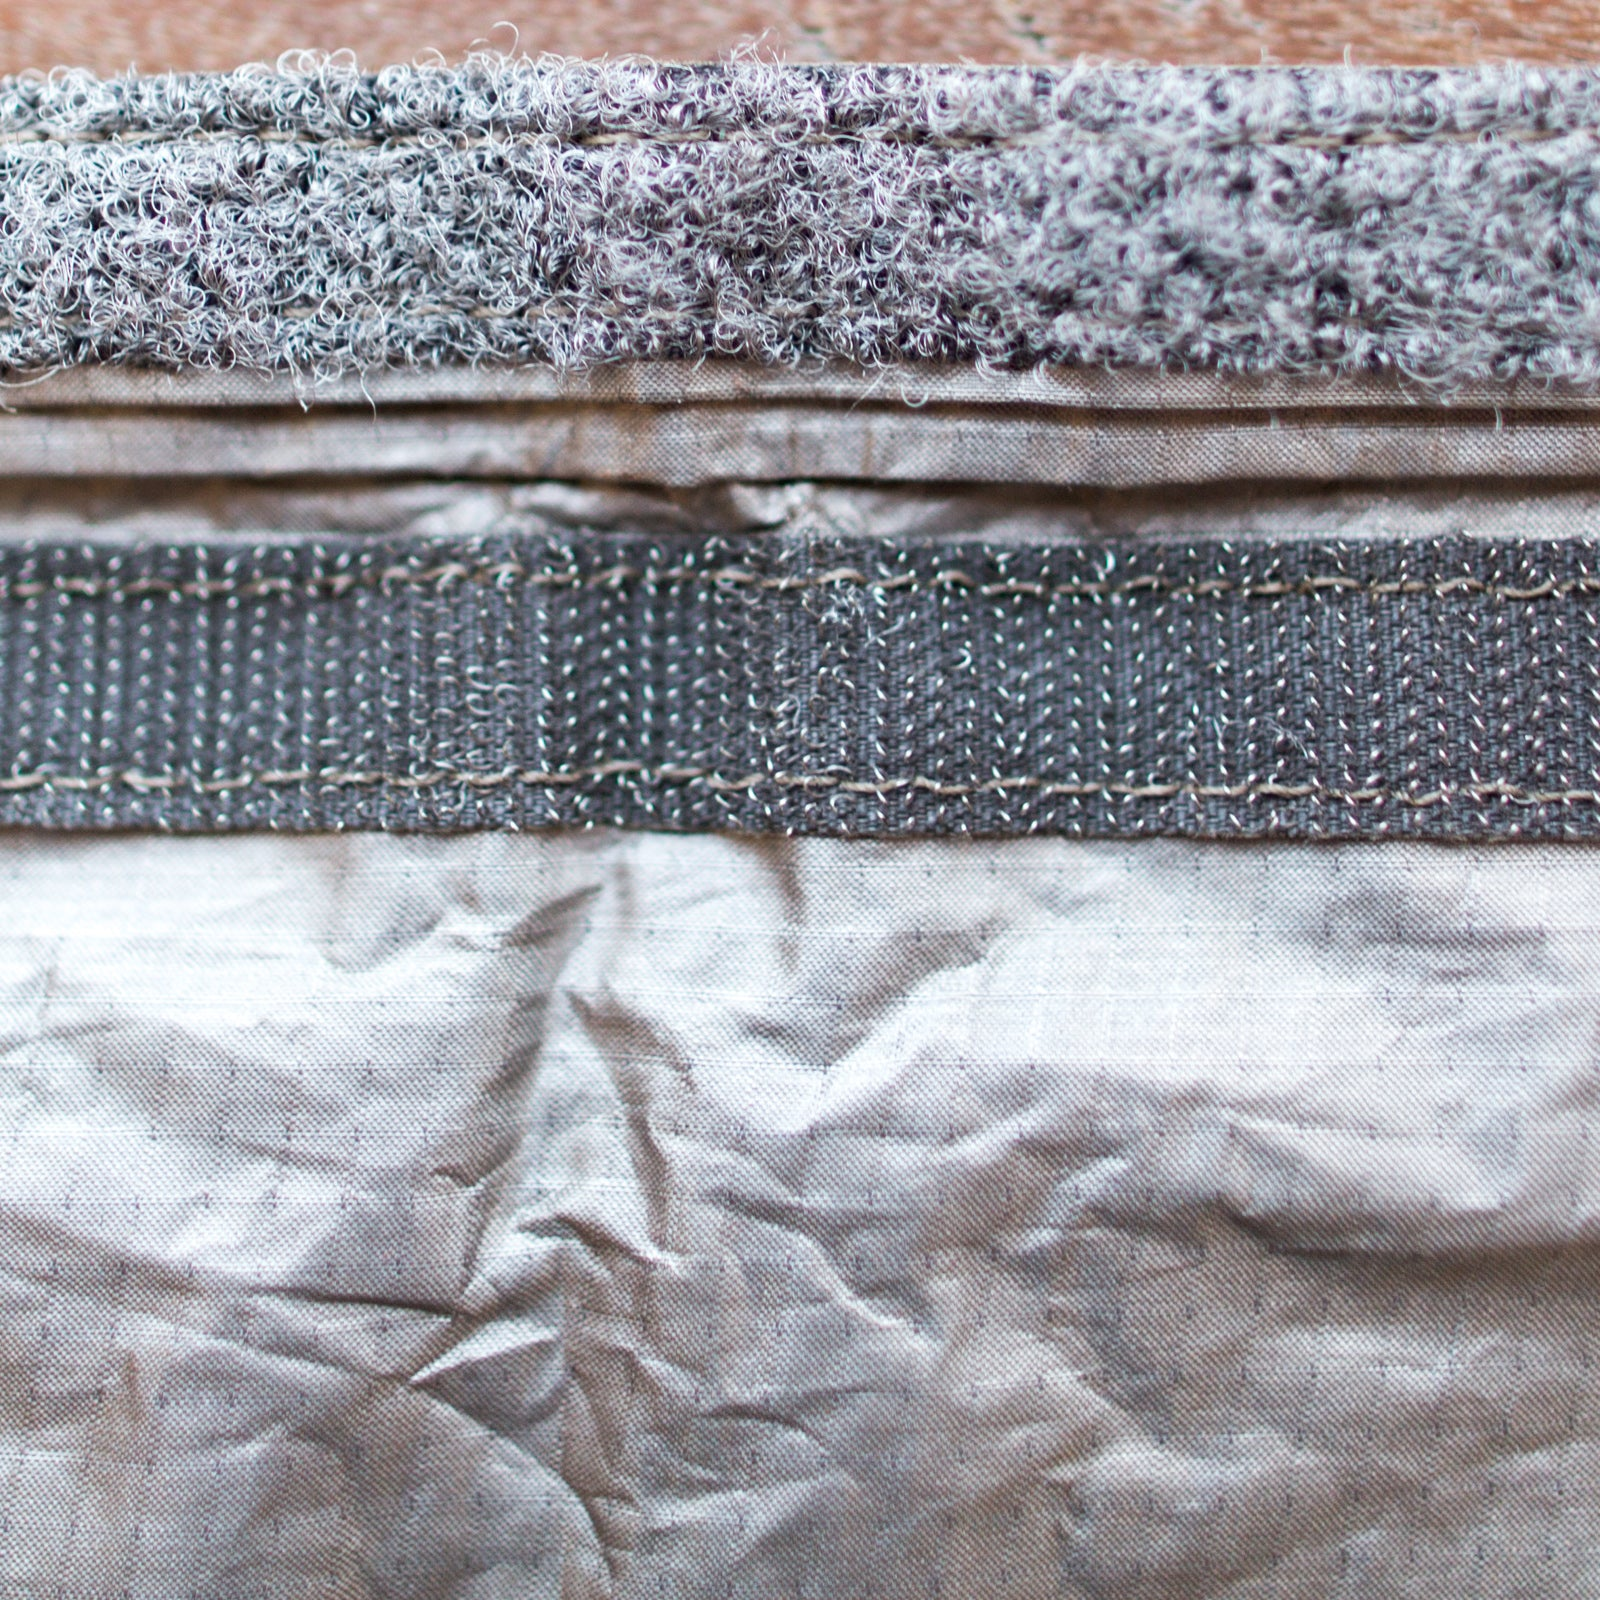 Silver, Copper, Nickel coated fabric